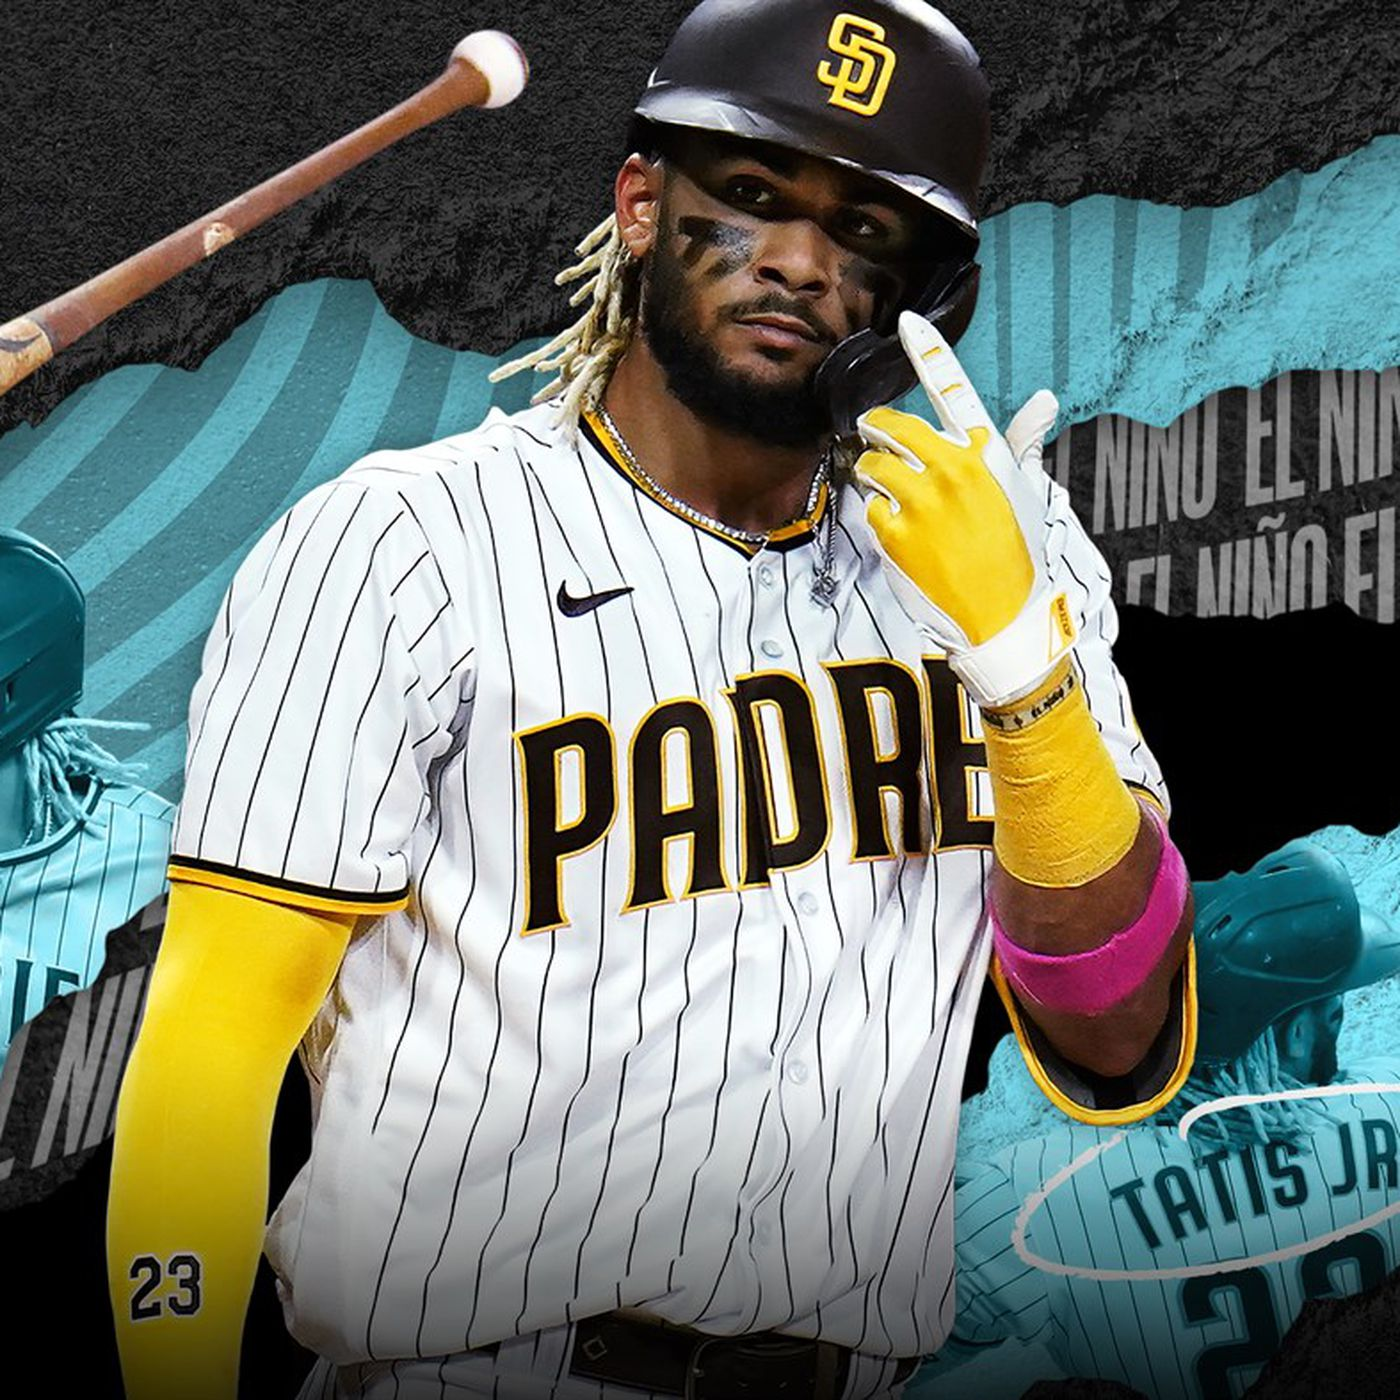 On April 20th, in both PlayStation and Xbox consoles- MLB The Show is coming